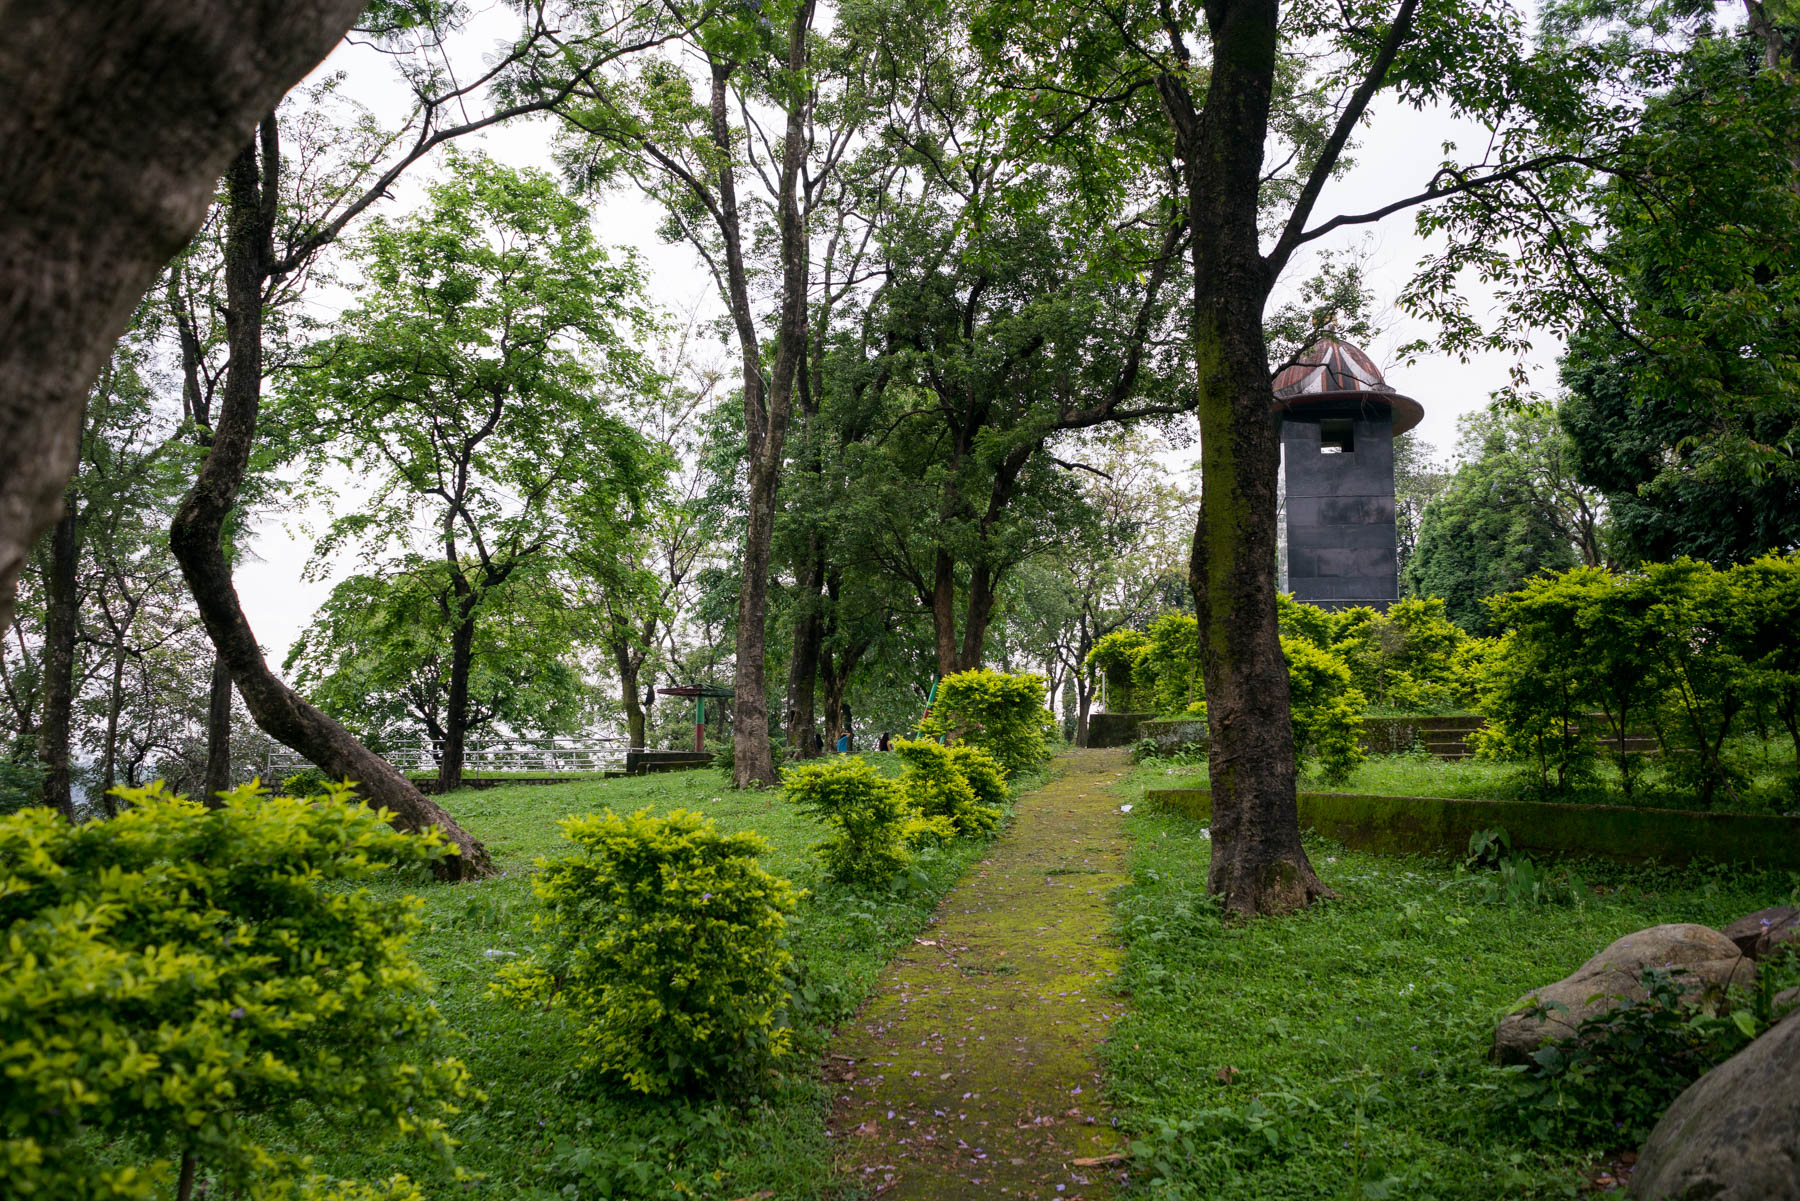 Backpacking in Arunachal Pradesh travel guide - Park in Pasighat - Lost With Purpose